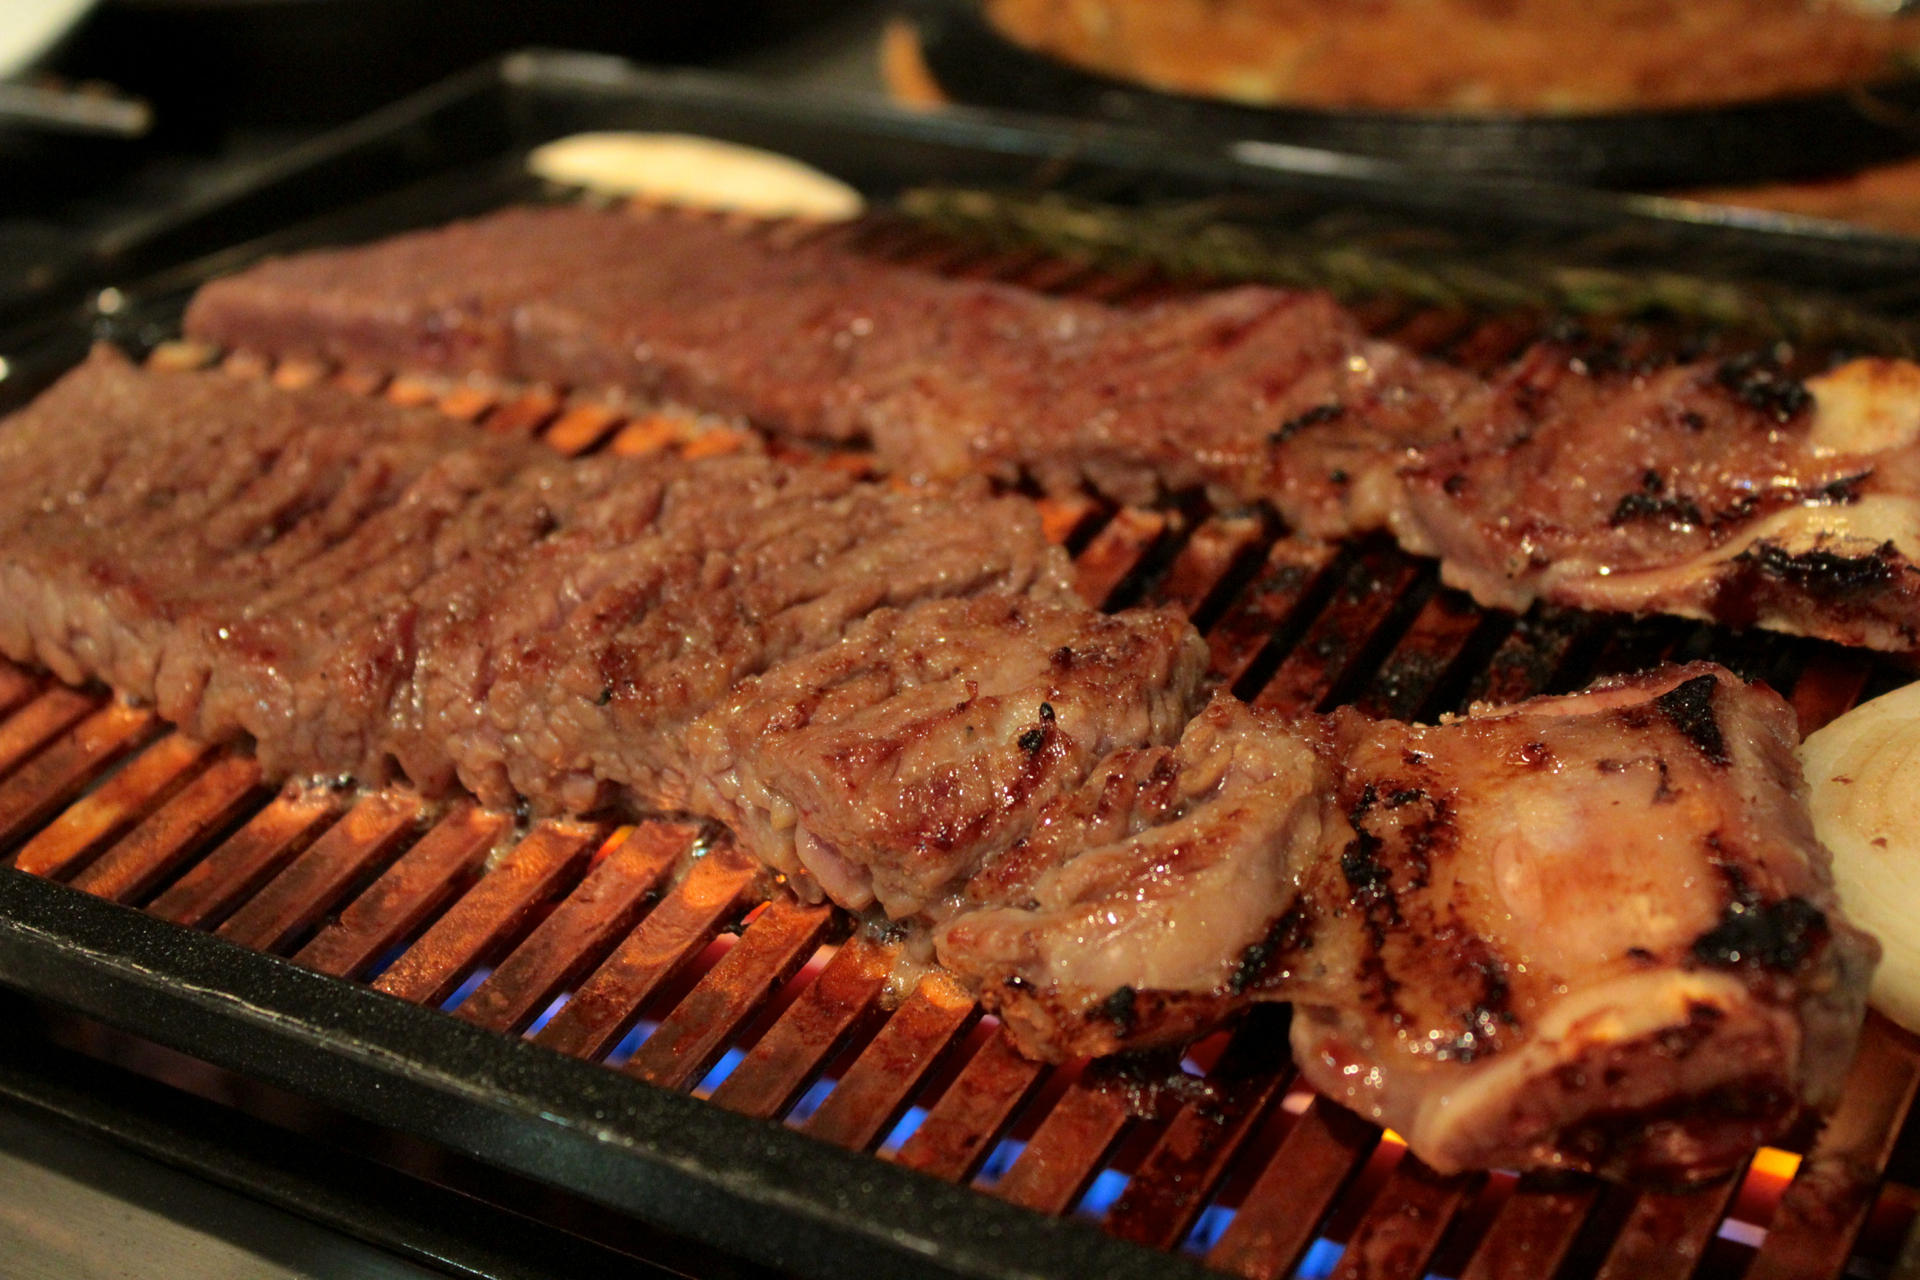 Marinated beef short rib on on the grill at Chungdam.